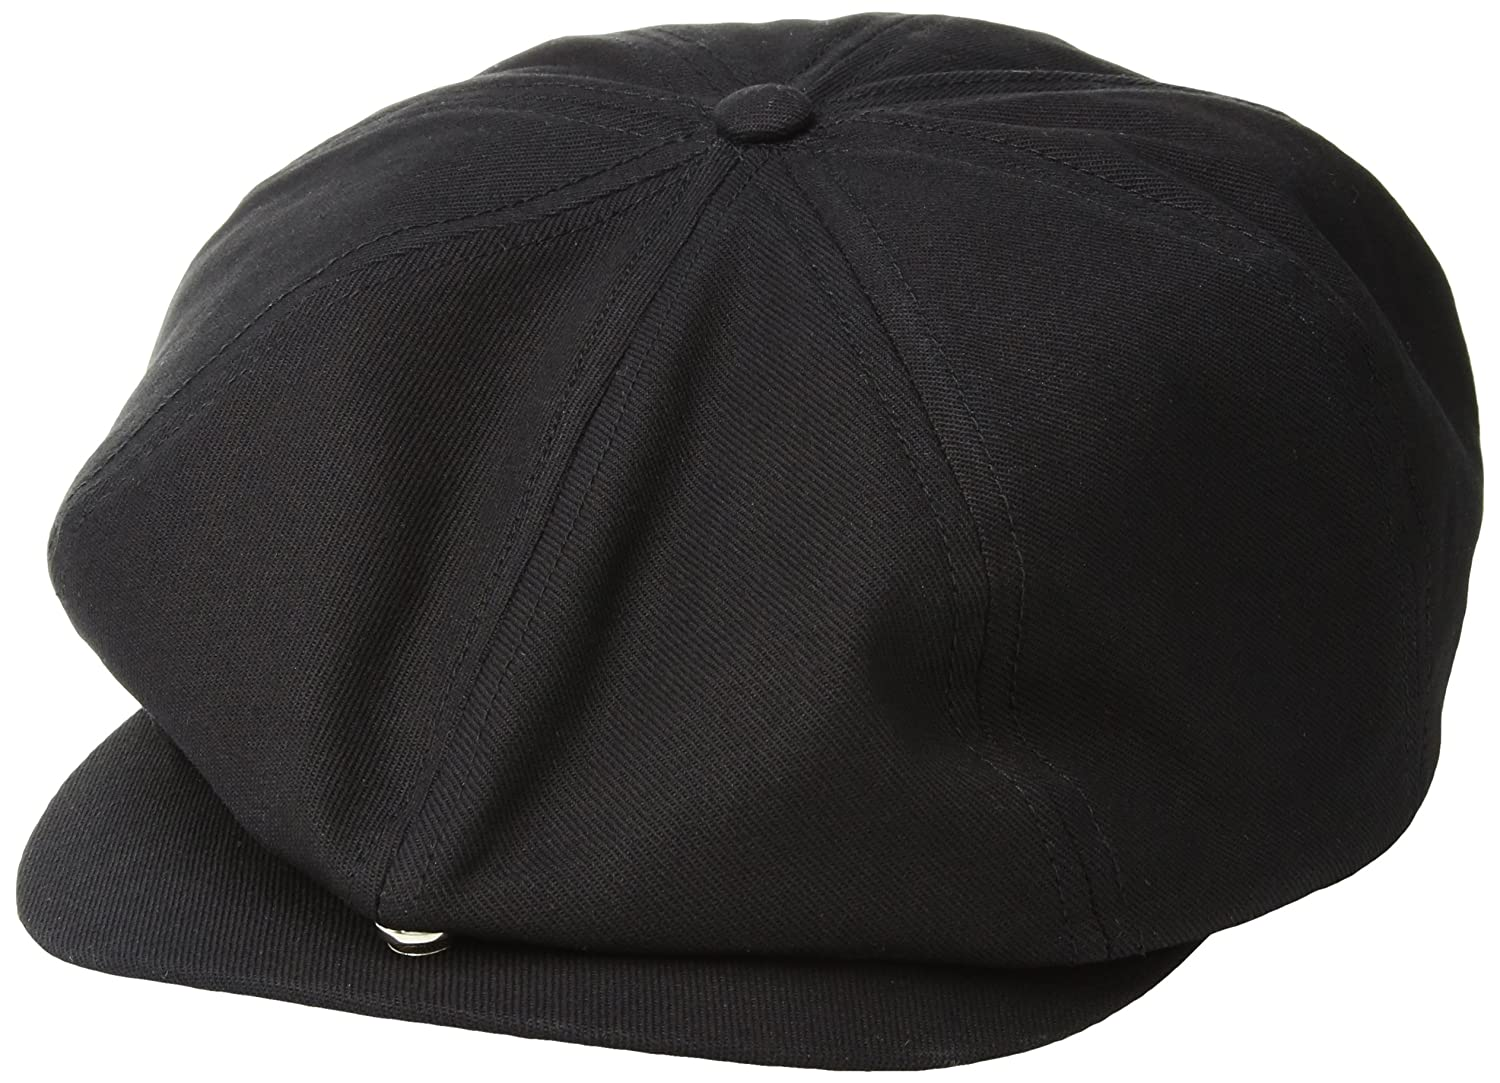 0dac5bb1 Amazon.com: Brixton Men's Brood Adjustable Newsboy SNAP HAT, Black, O/S:  Clothing